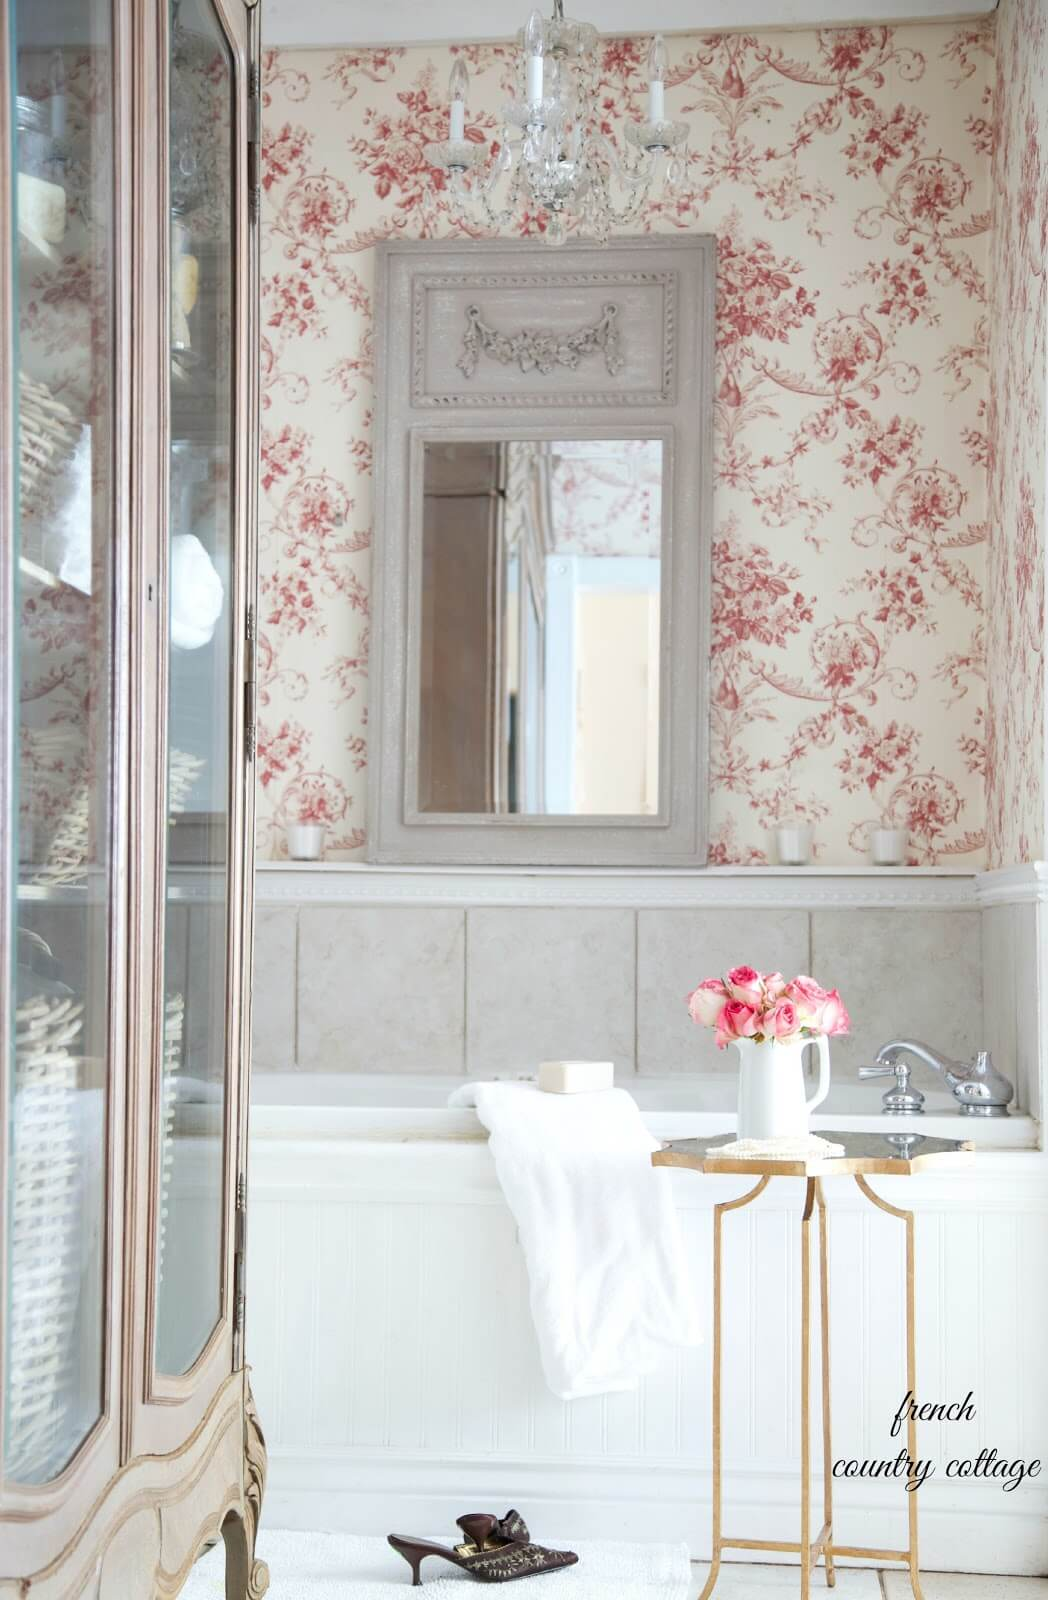 11. Dress Up Your Walls with Ornate Mirrors